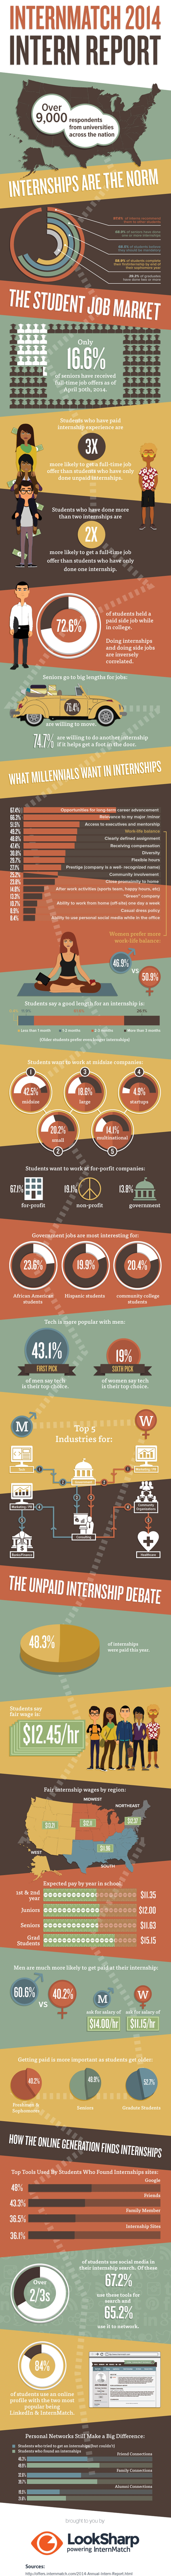 The 2014 Internship Report Infographic